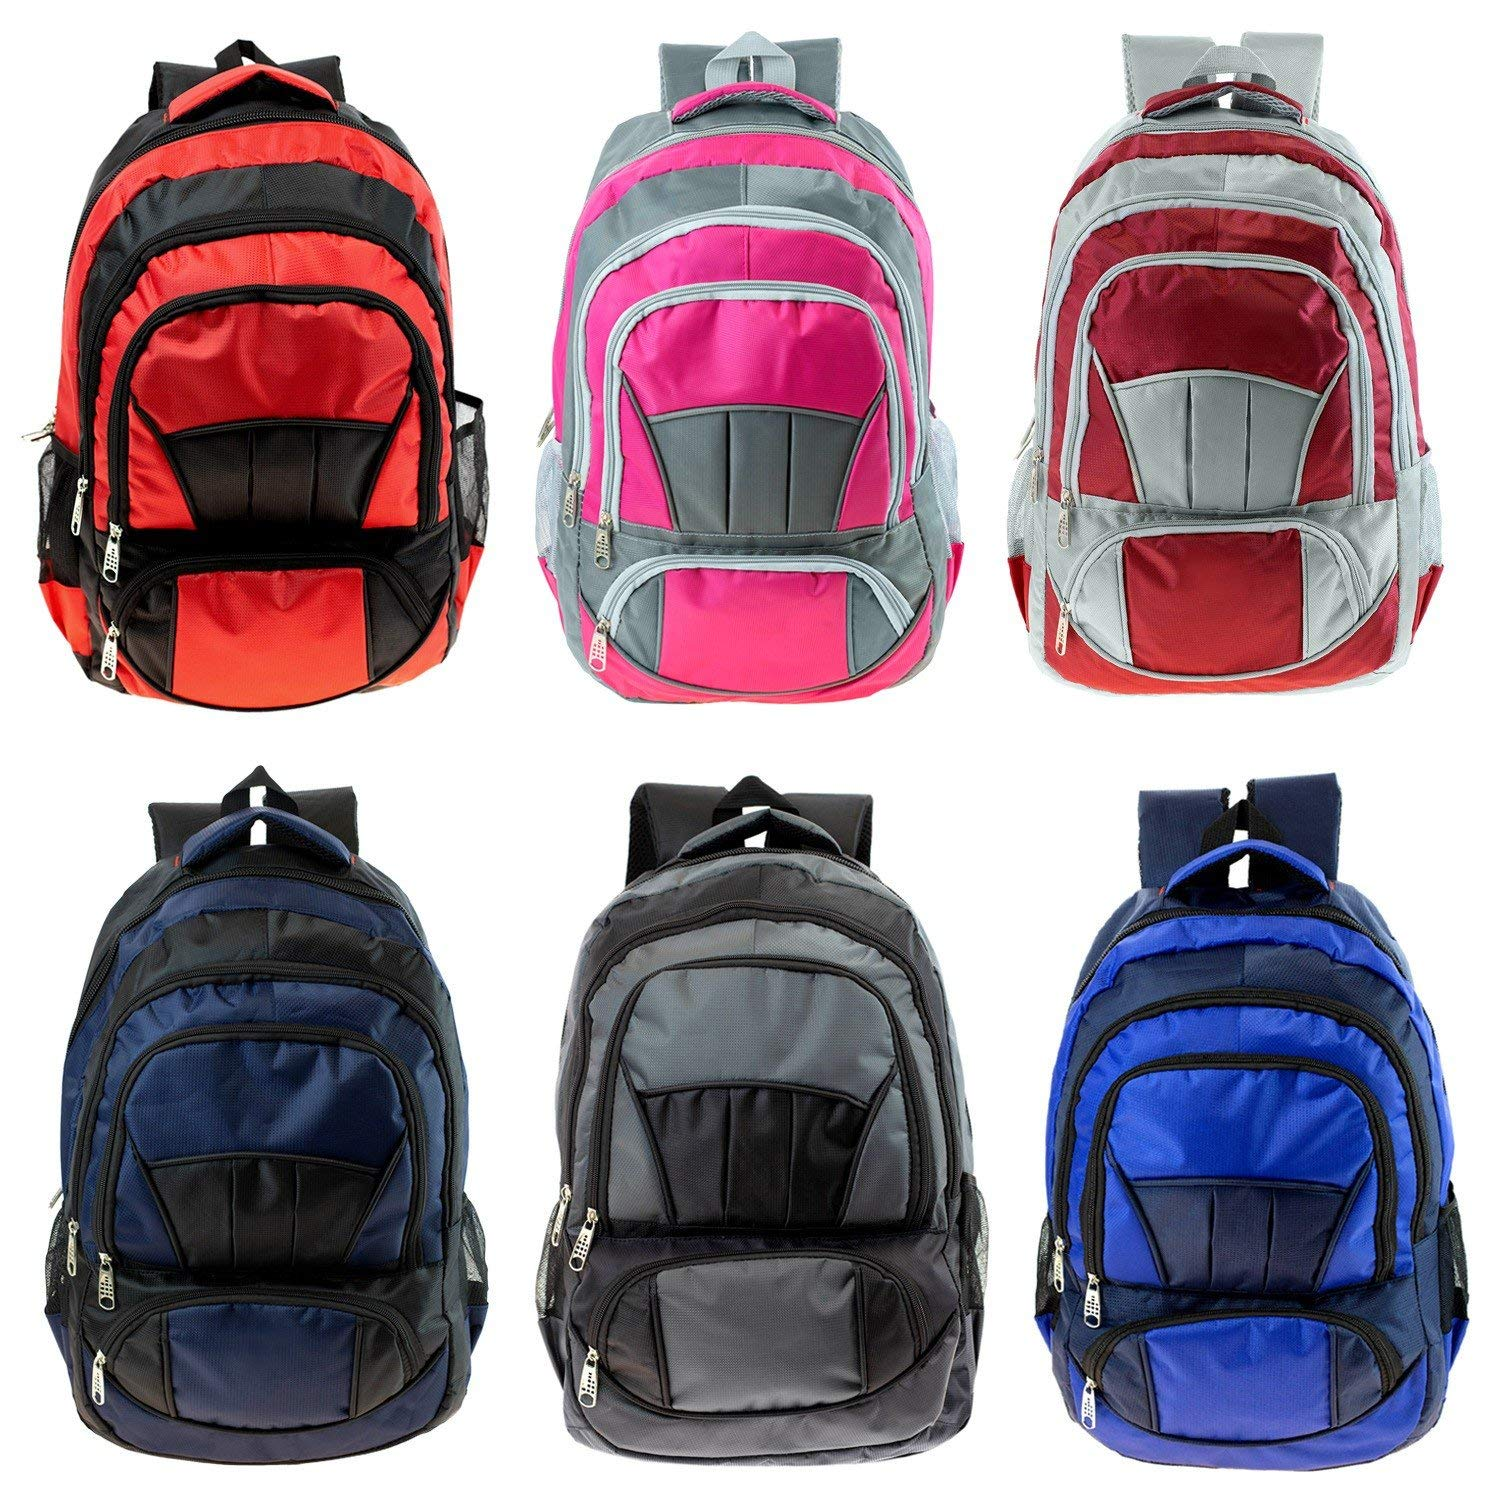 Wholesale 19 Inch Adult Large Premium Padded Backpack in 6 Assorted Colors - Bulk Case of 24 Bookbags by Moda West